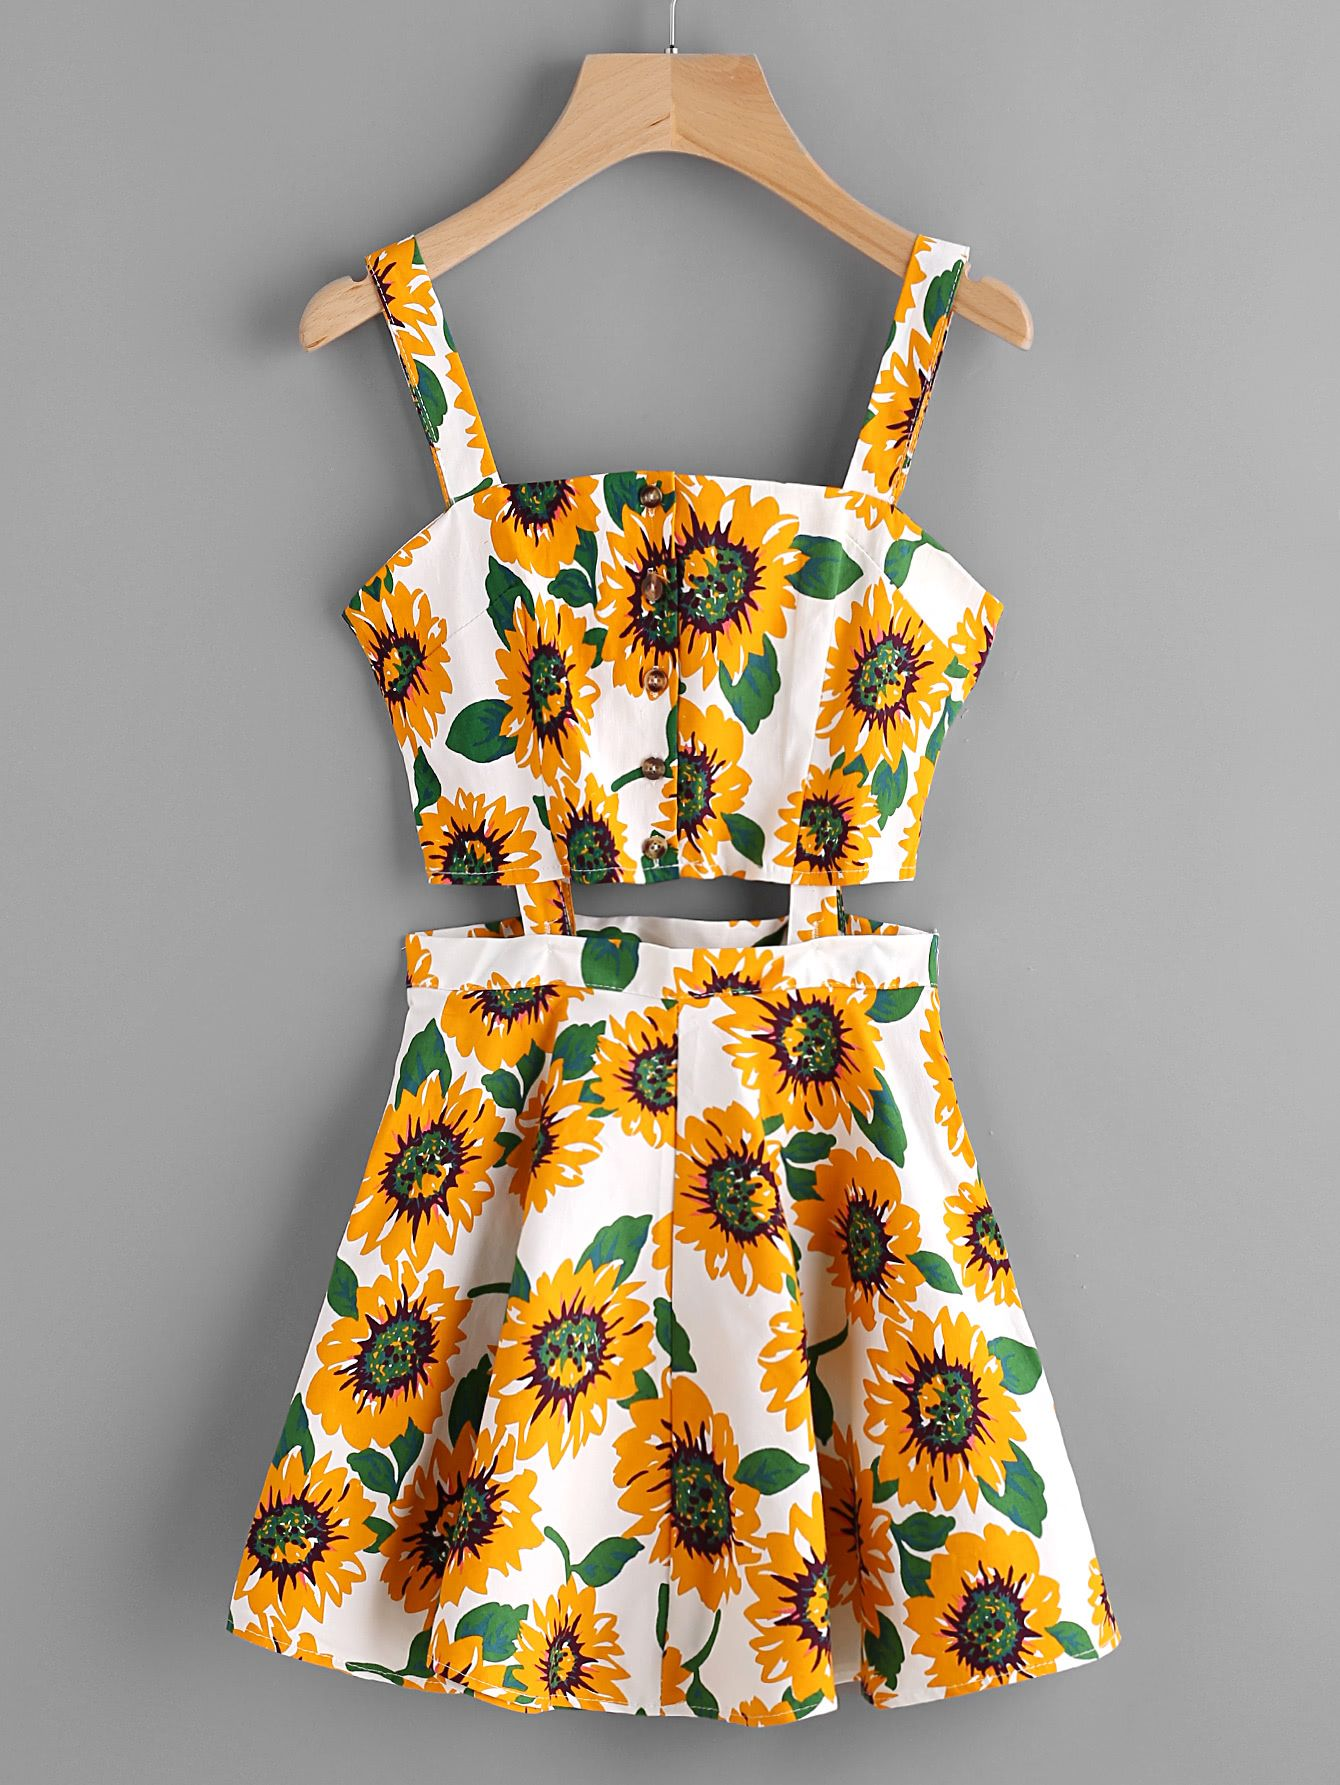 a9c0e18c1704 Shop Sunflower Print Random Single Breasted Cut Out Dress online. SheIn  offers Sunflower Print Random Single Breasted Cut Out Dress & more to fit  your ...